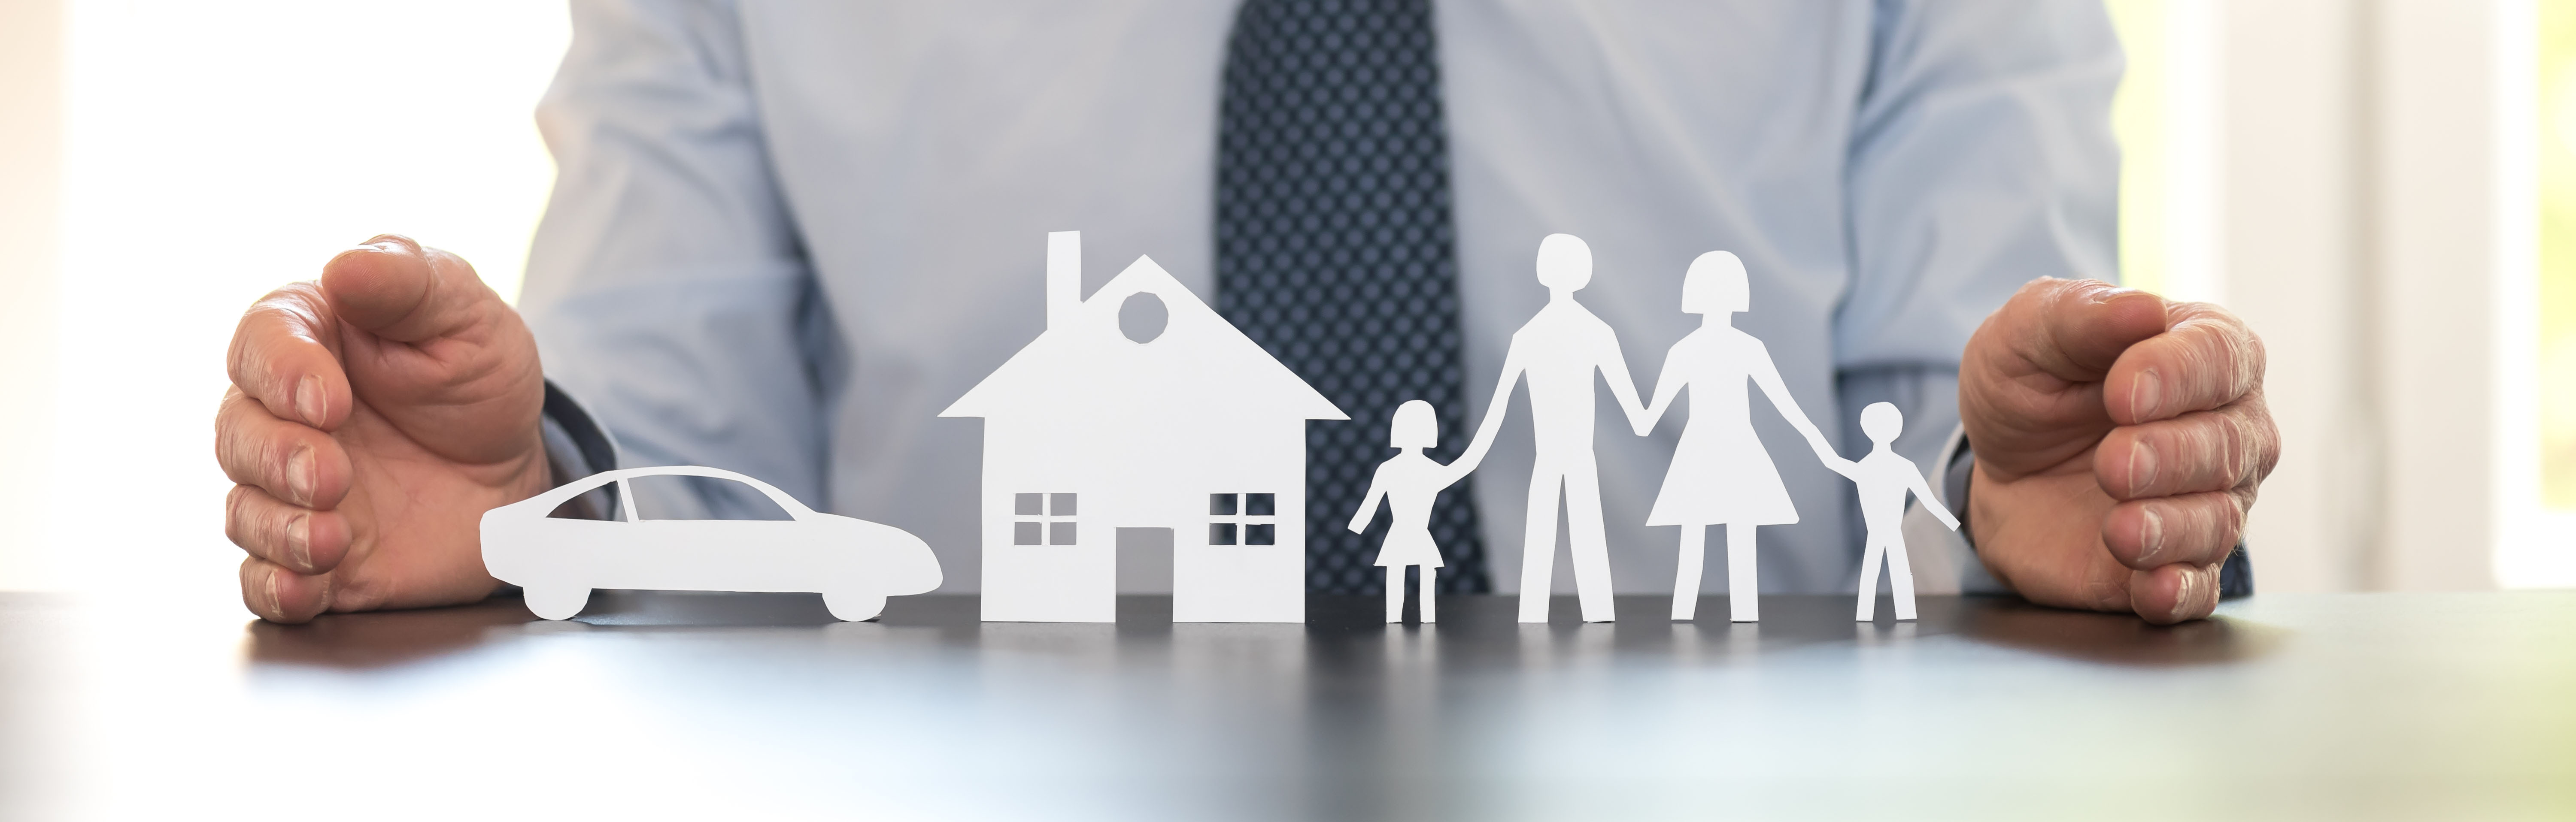 photo of a person holding out a paper cutout of a family, a house and a car